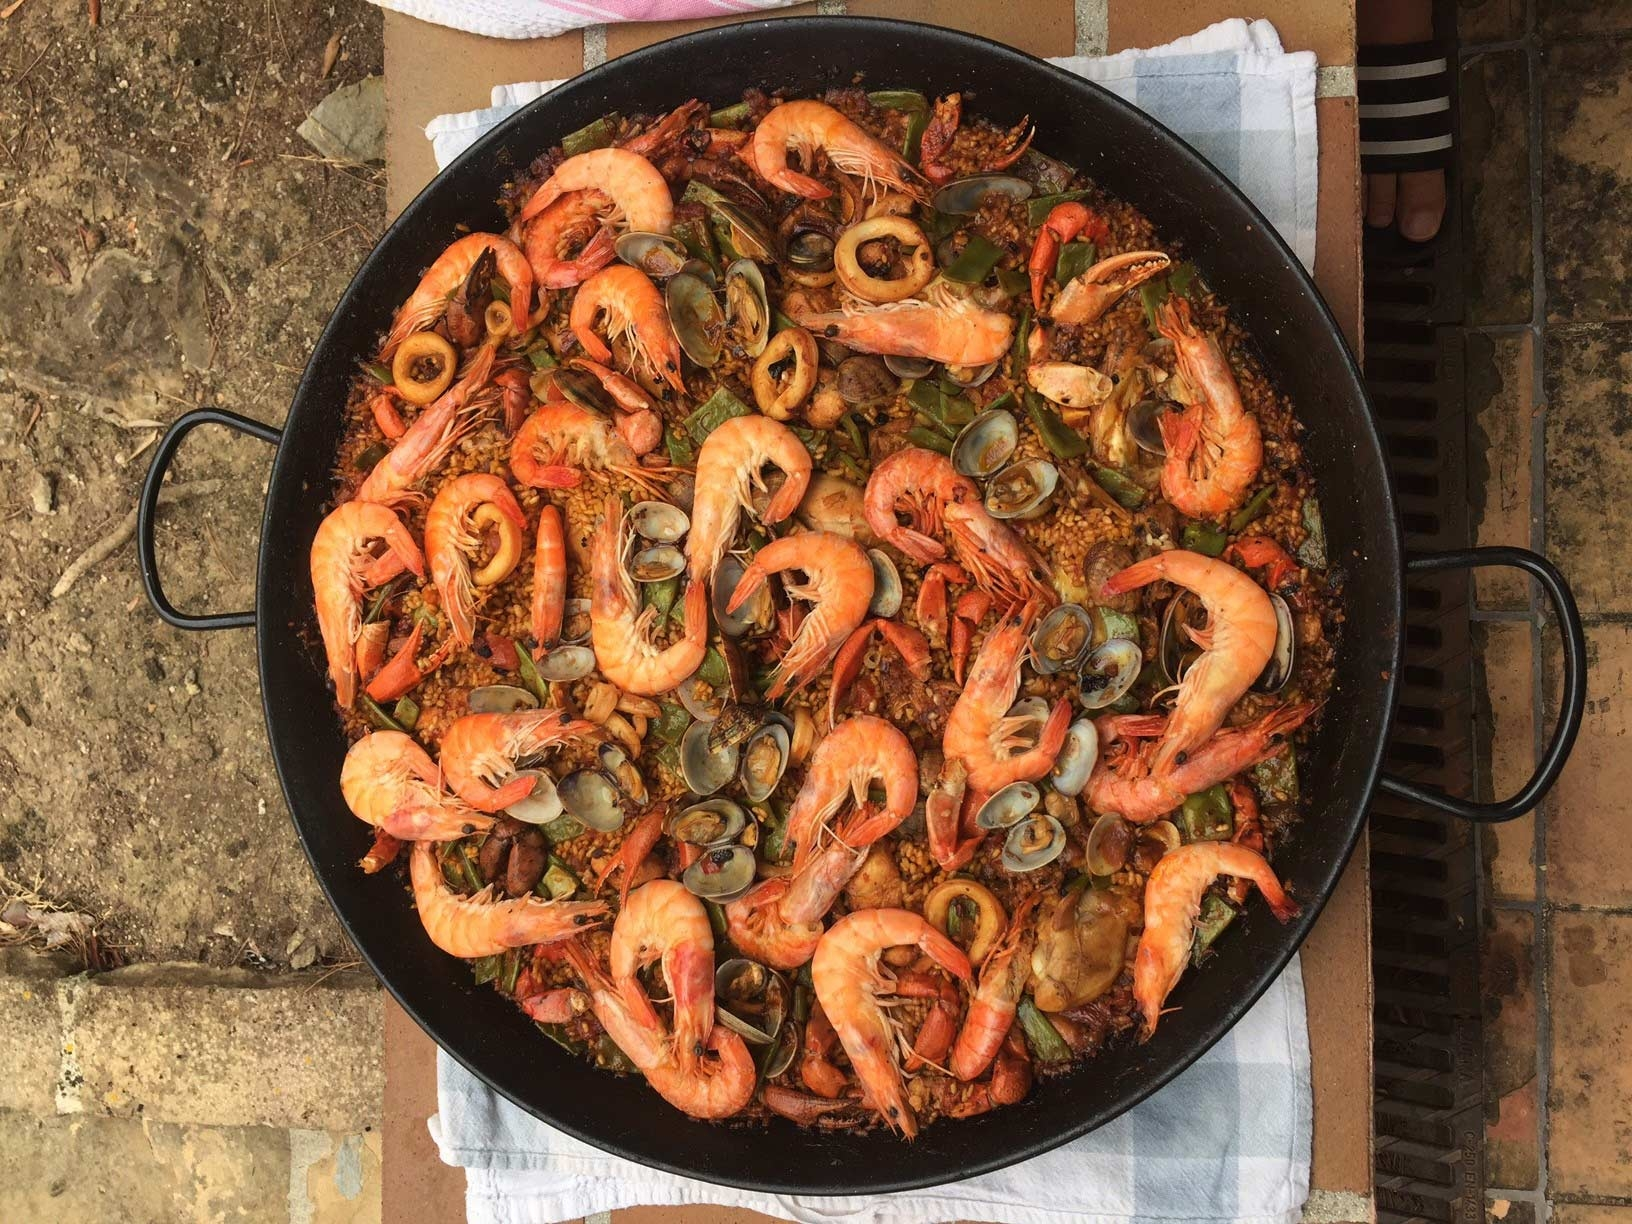 Paella: Homemade at our villa with freshly caught seafood